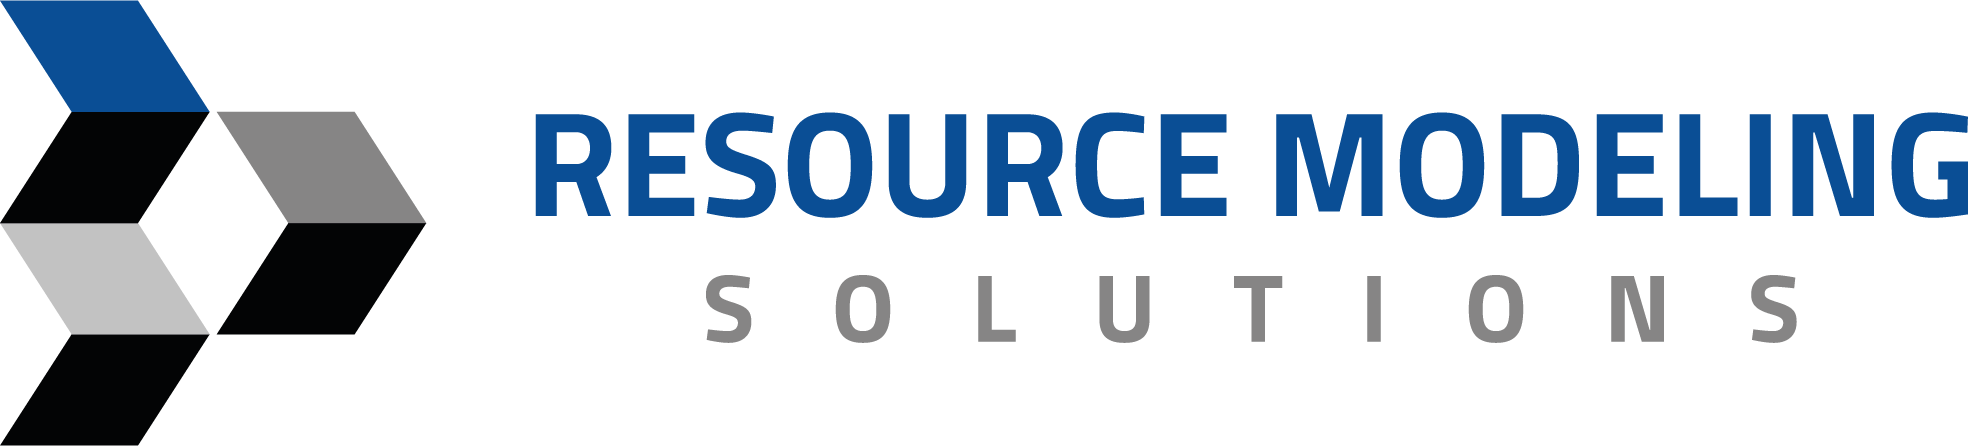 Resource Modeling Solutions Standalone Logo